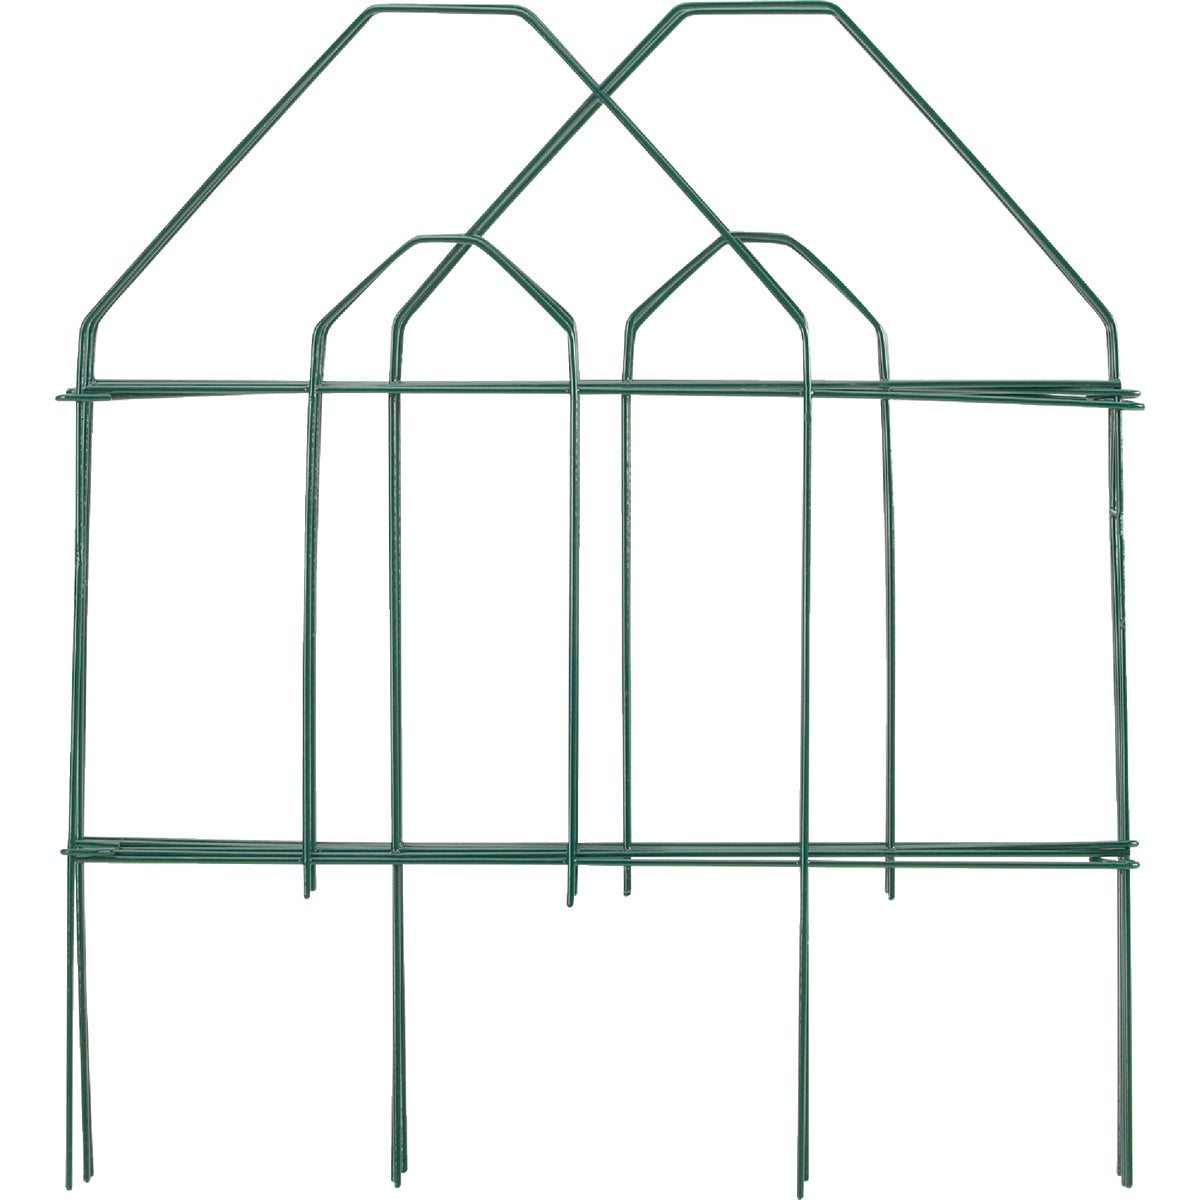 18X8 GREEN FOLDING FENCE - 701033 by Do it Best